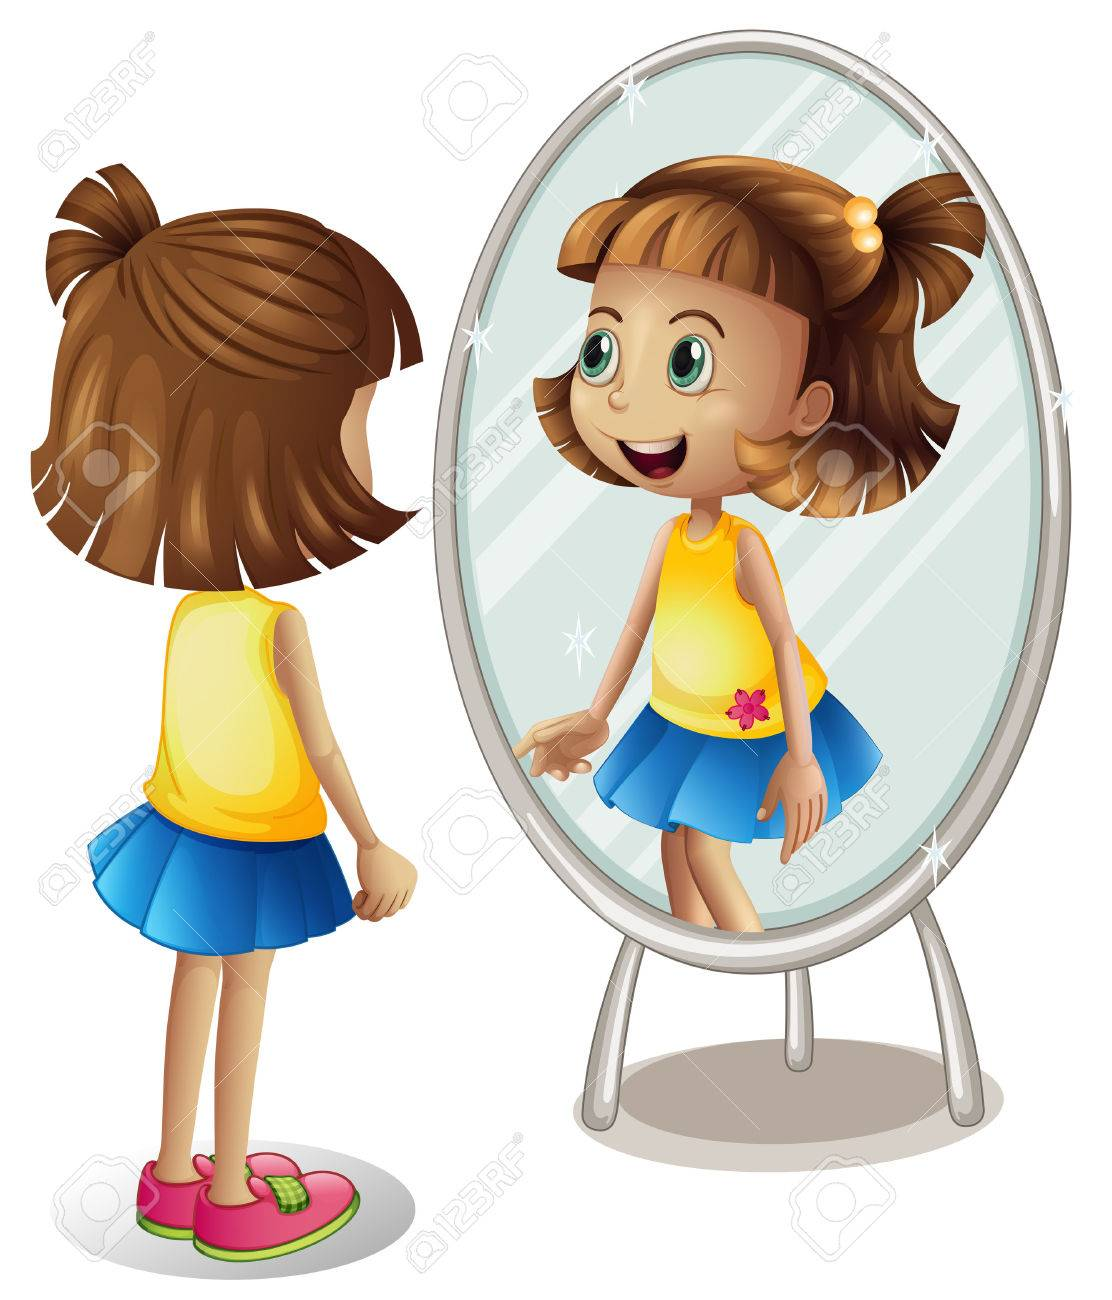 Little girl looking at herself in mirror illustration.